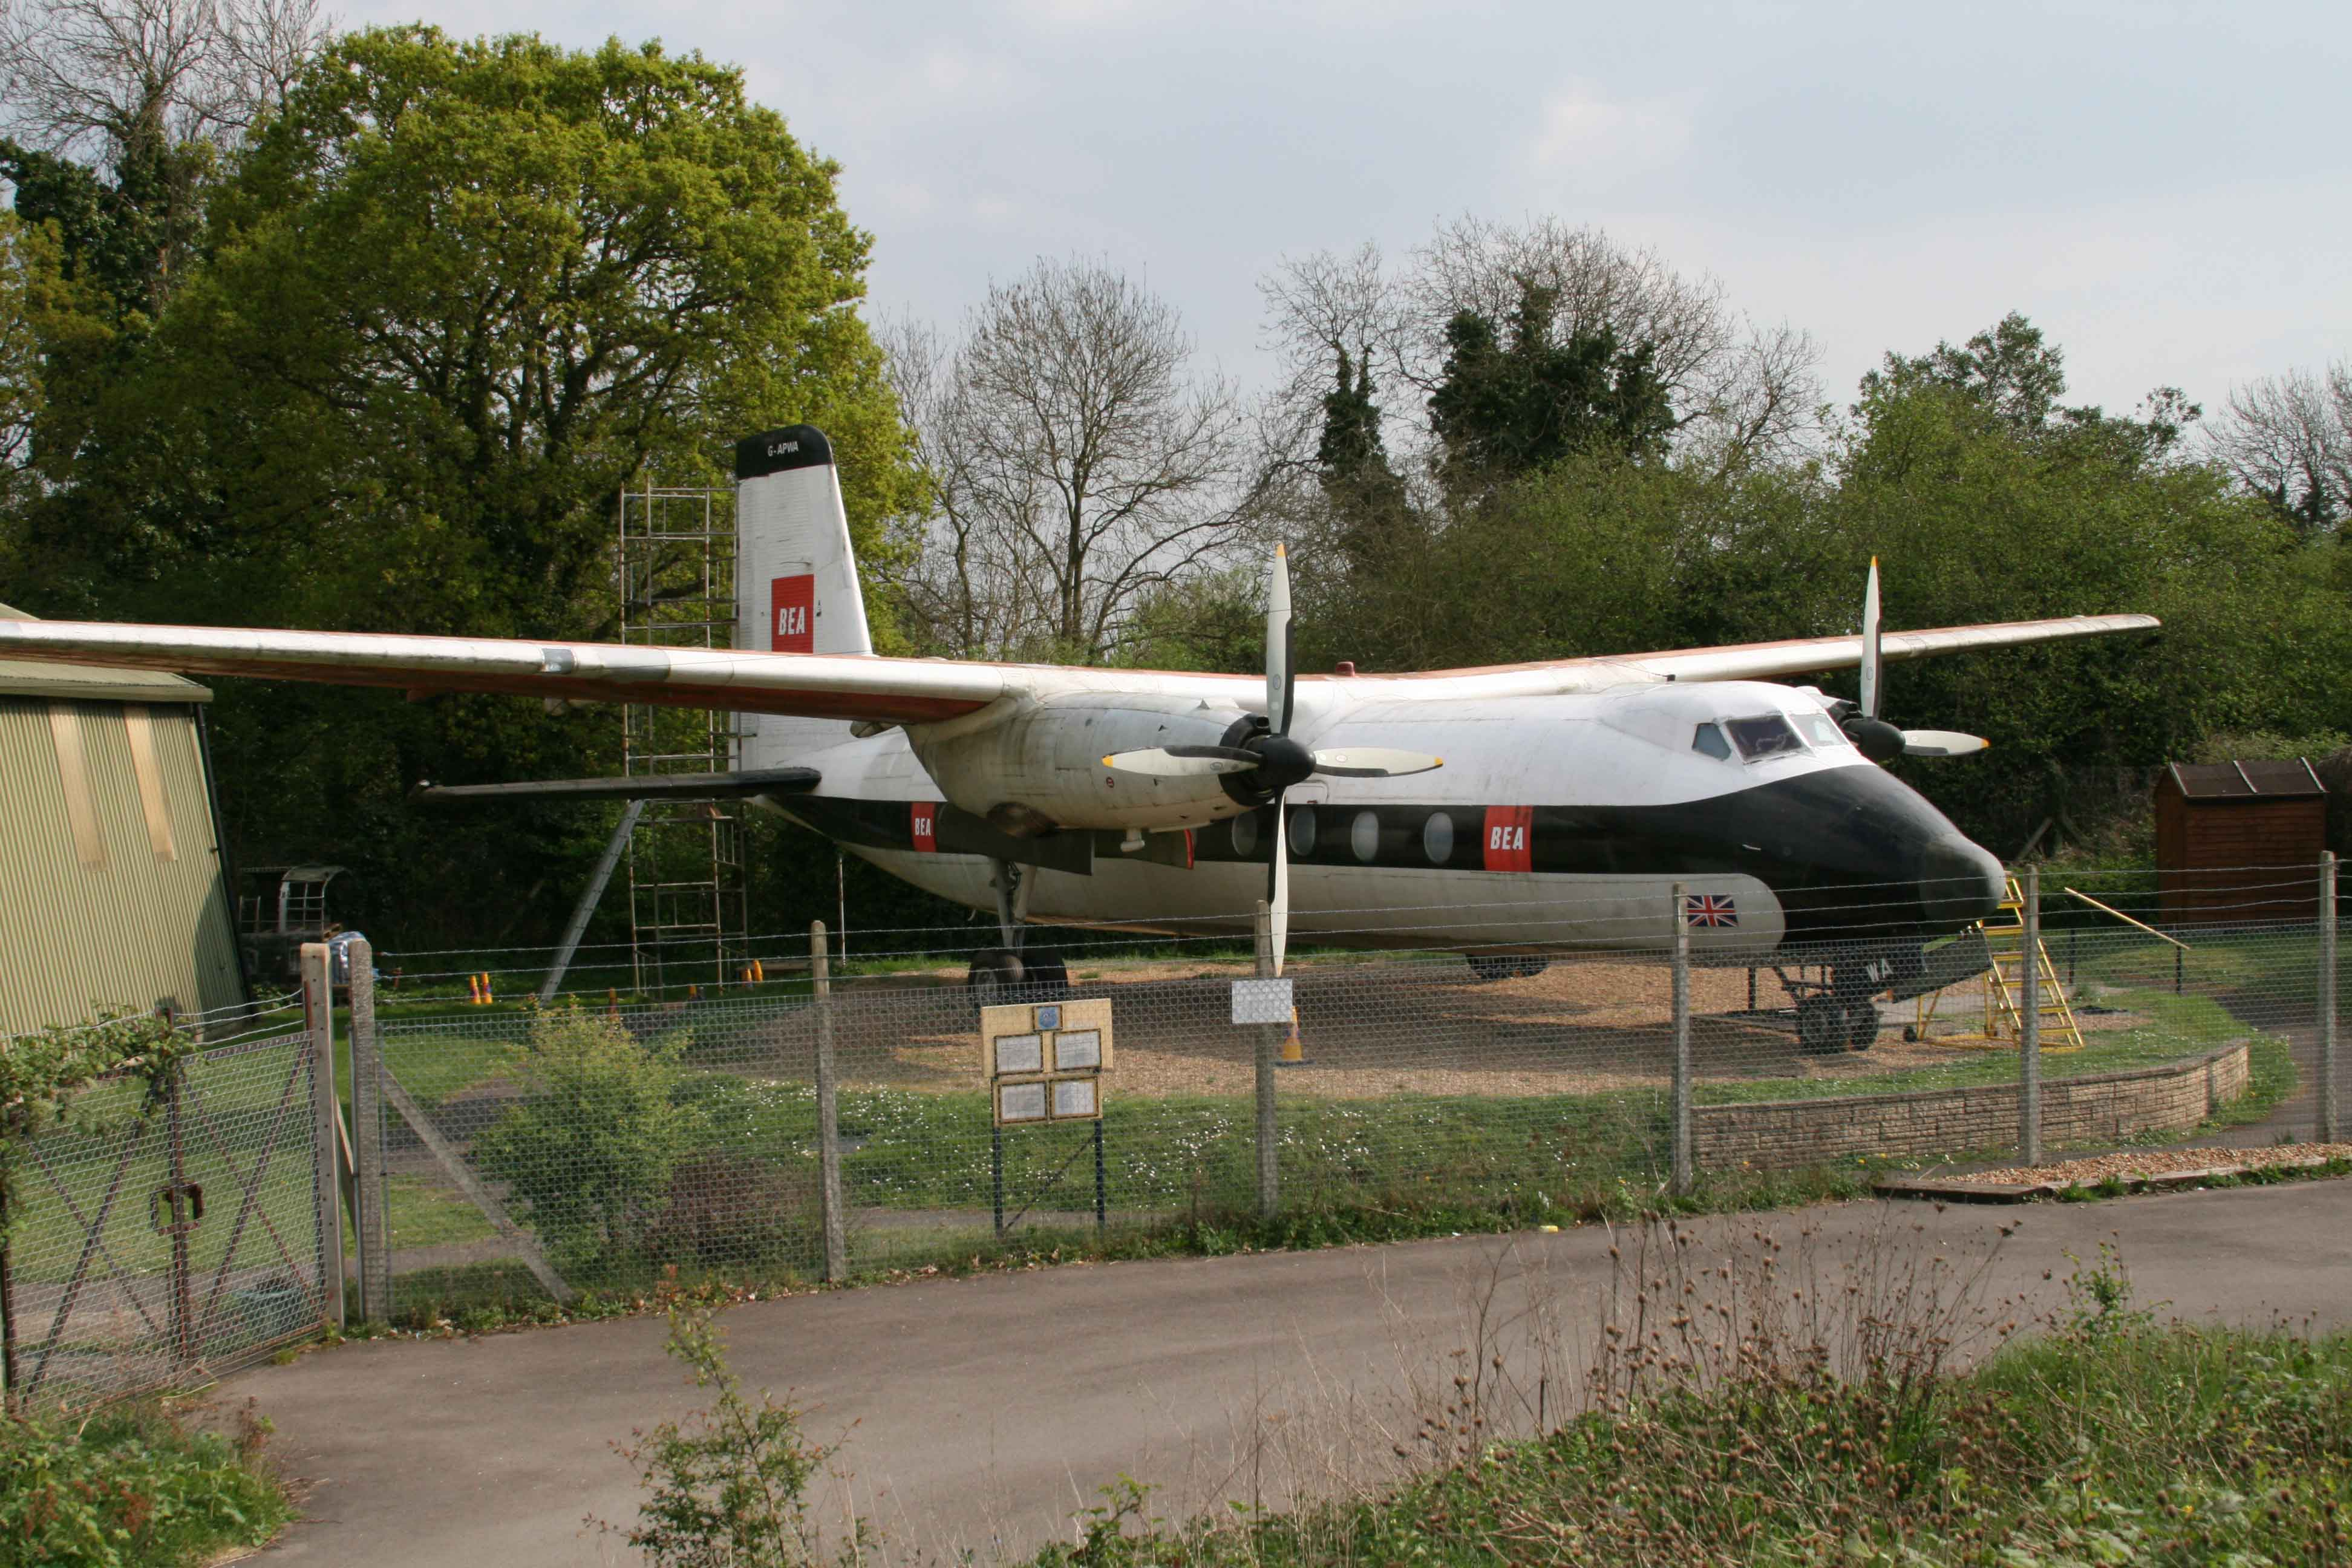 Handley Page Herald